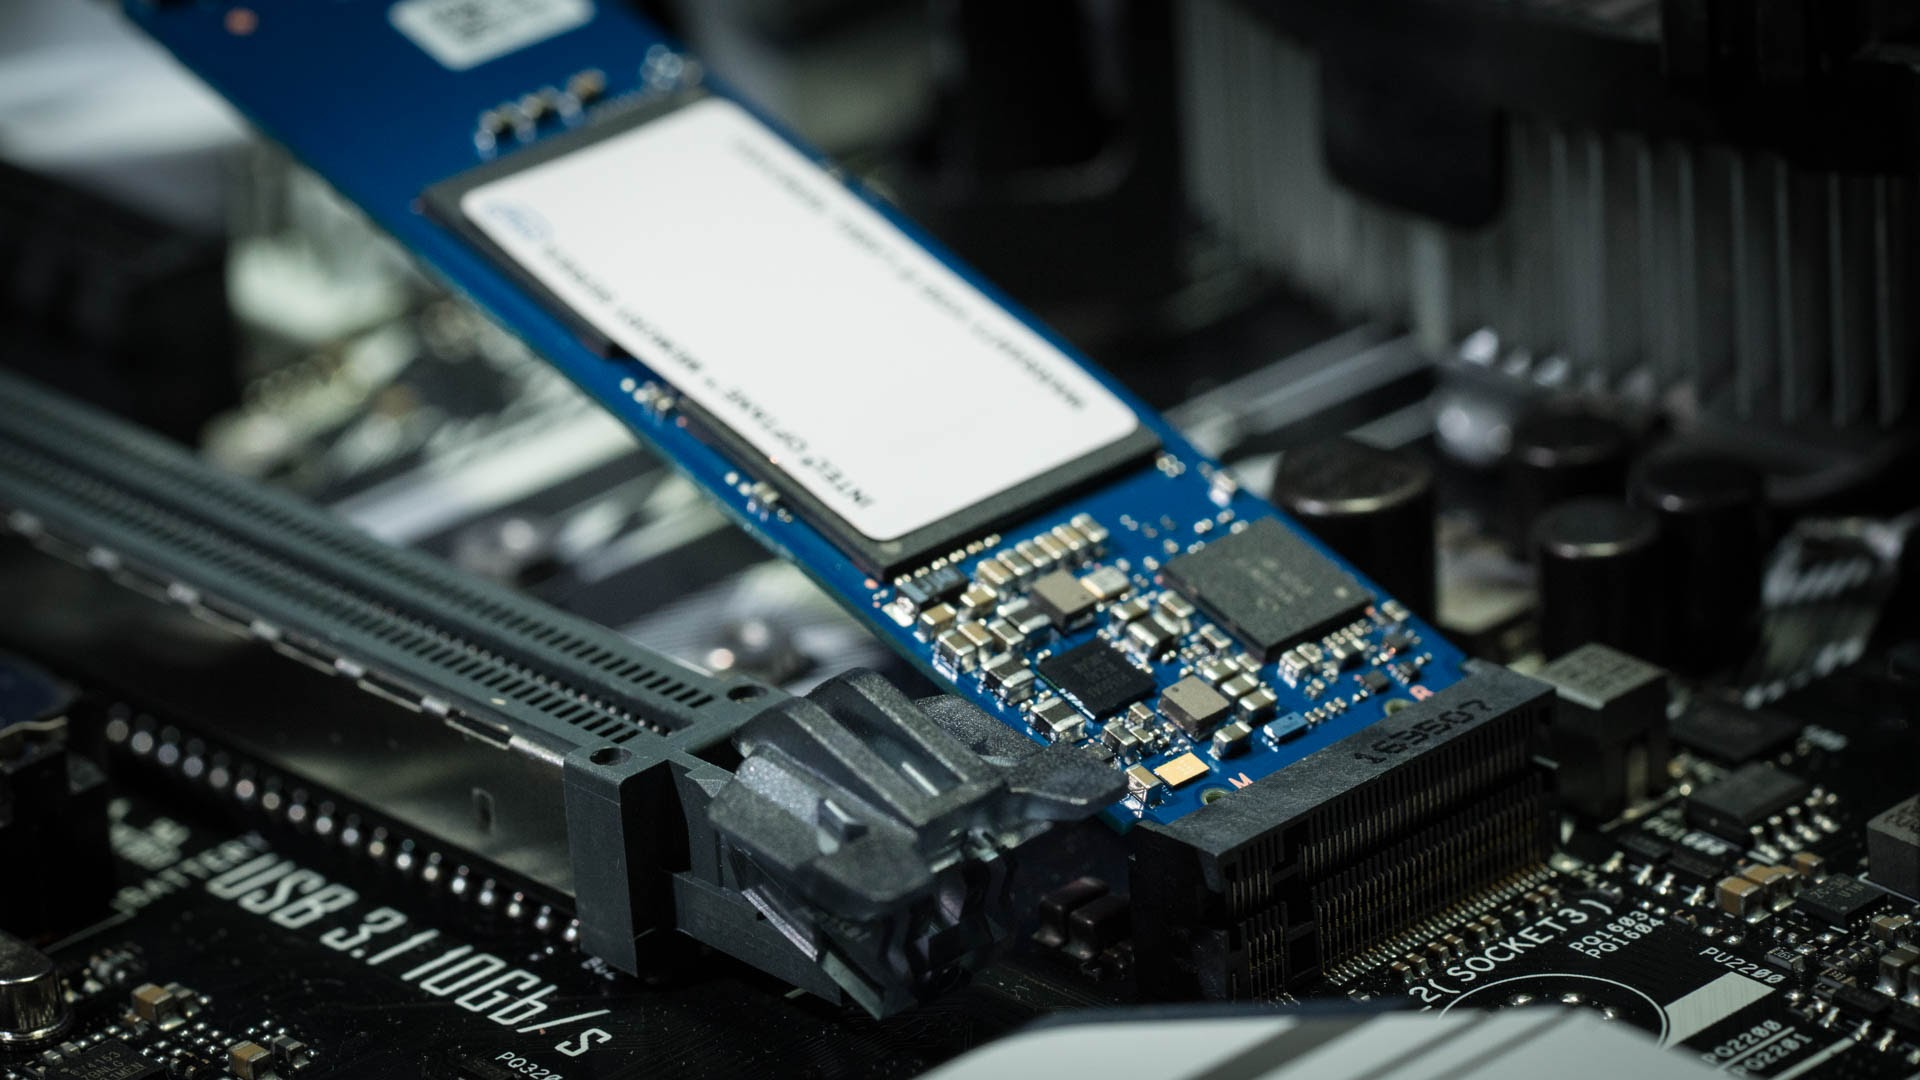 NVMe SSD Roundup 2018: Intel Optane, WD Black and Samsung 970 Evo